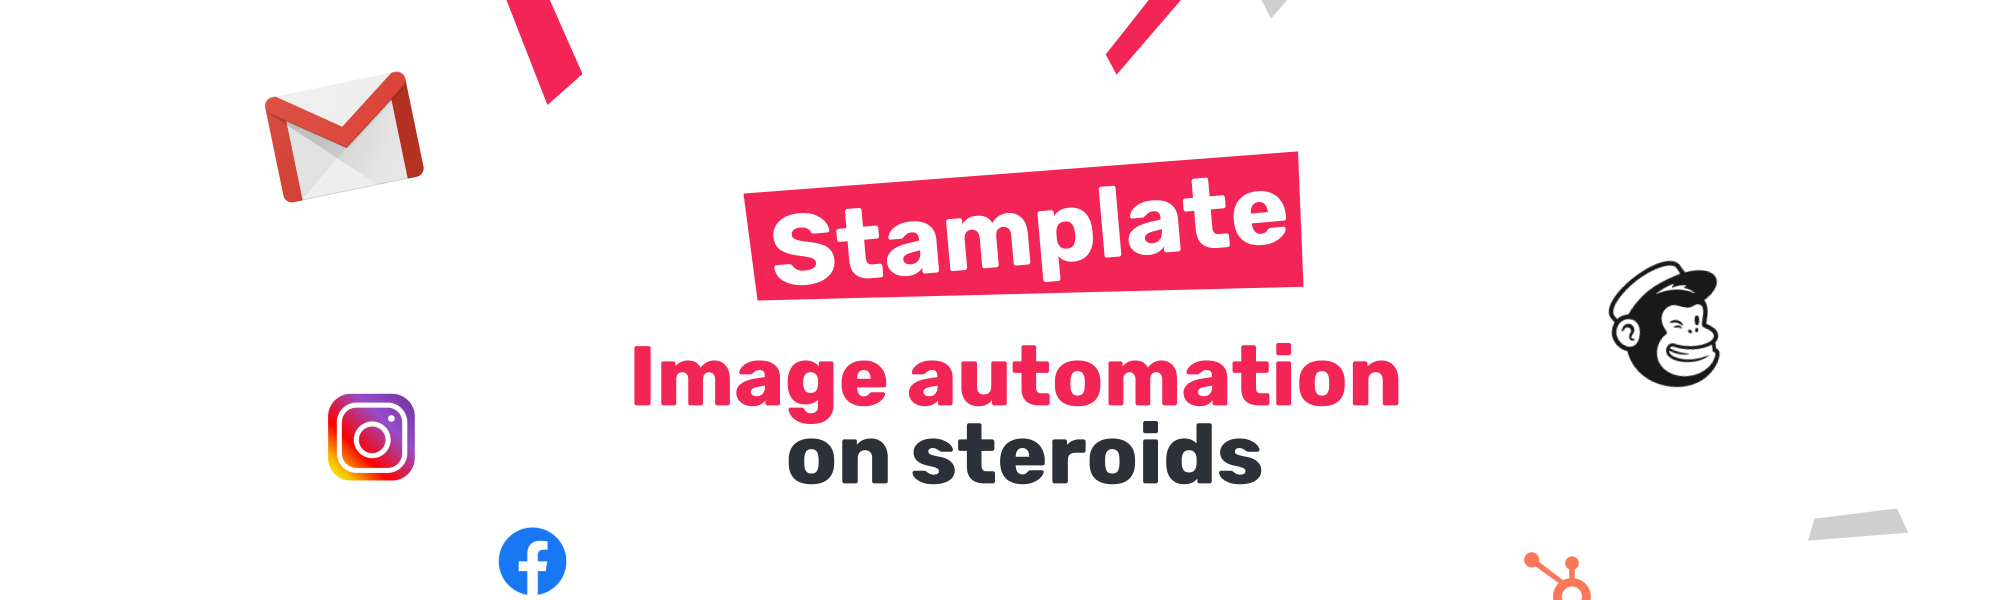 Review Stamplate: Automate the generation of custom images - Appvizer